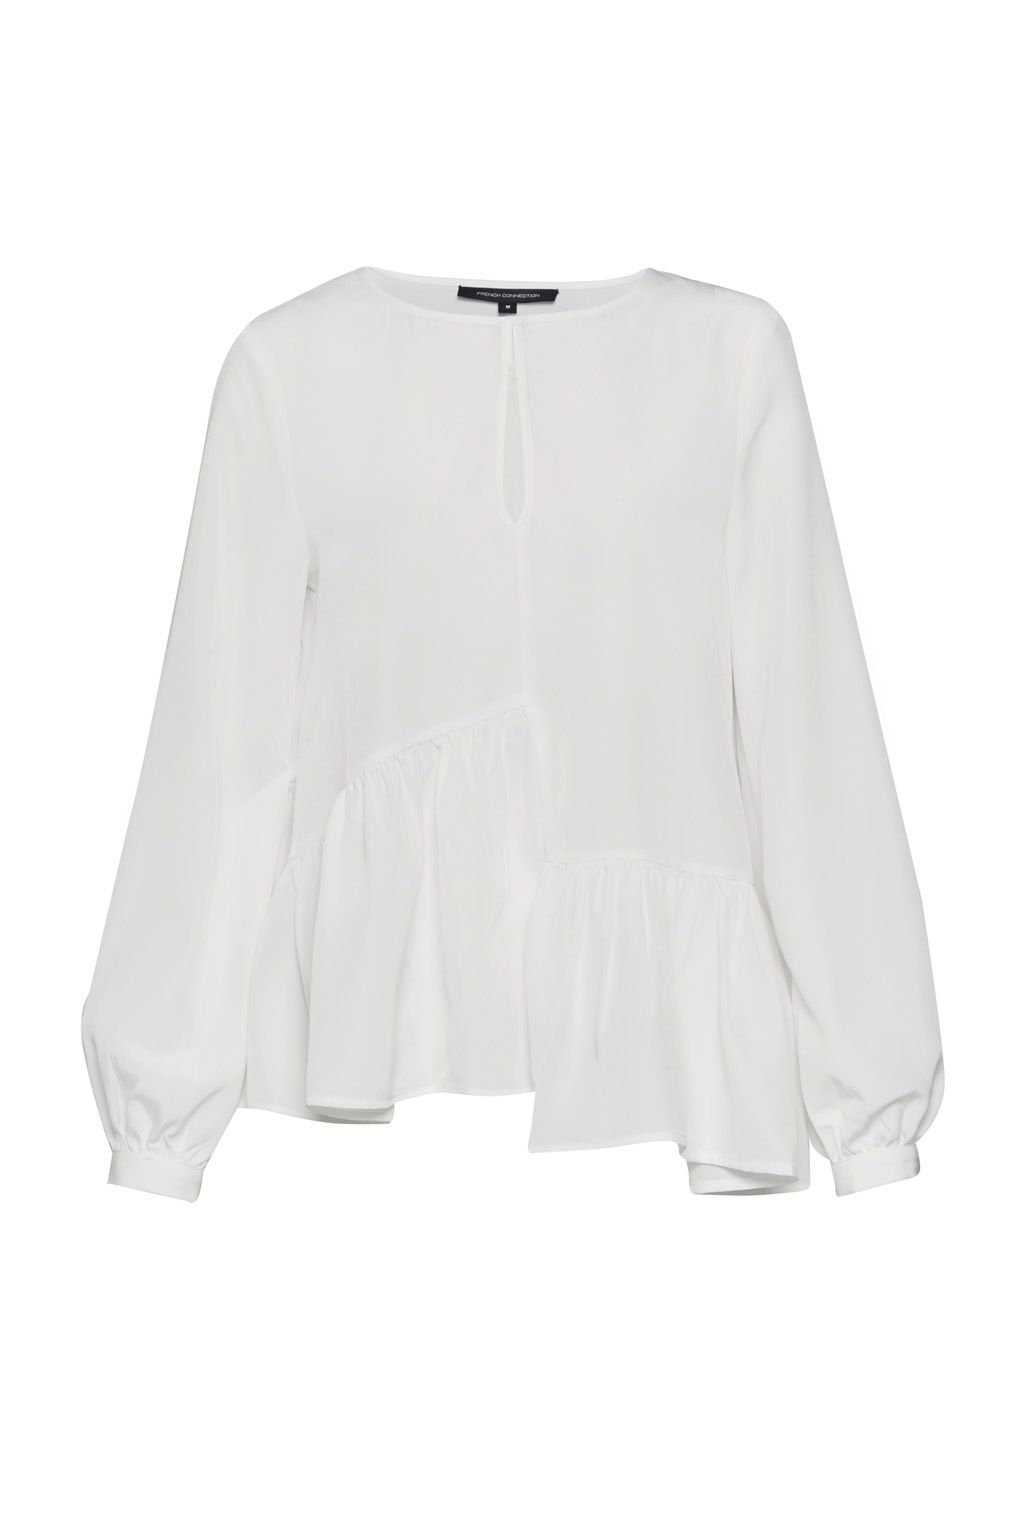 French Connection Lisette Lightweight Crepe Top, Winter White